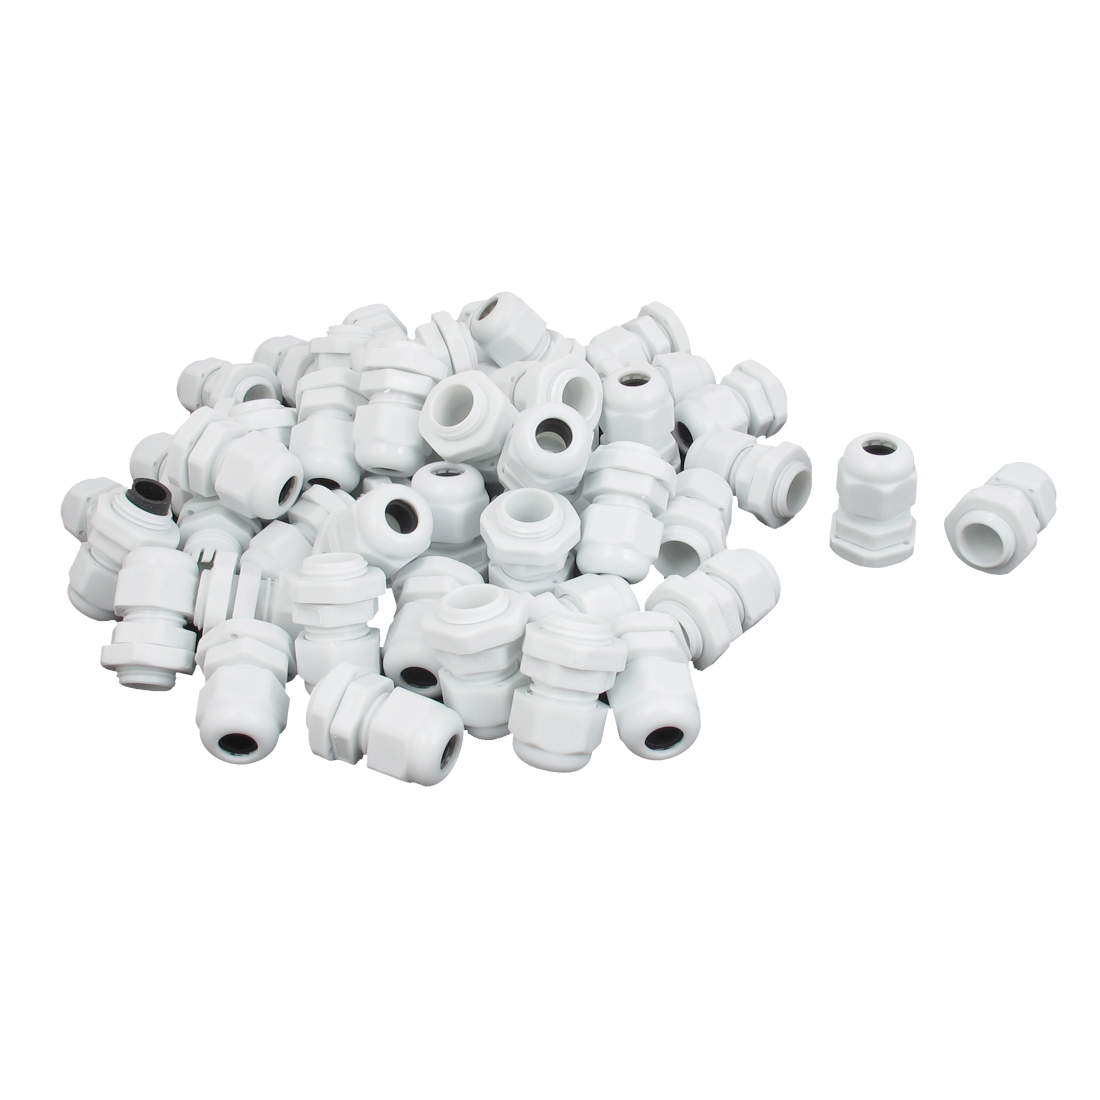 60 Pcs 4-8mm Cable Gland Waterproof Joint Connector Locknut White M16x1.5